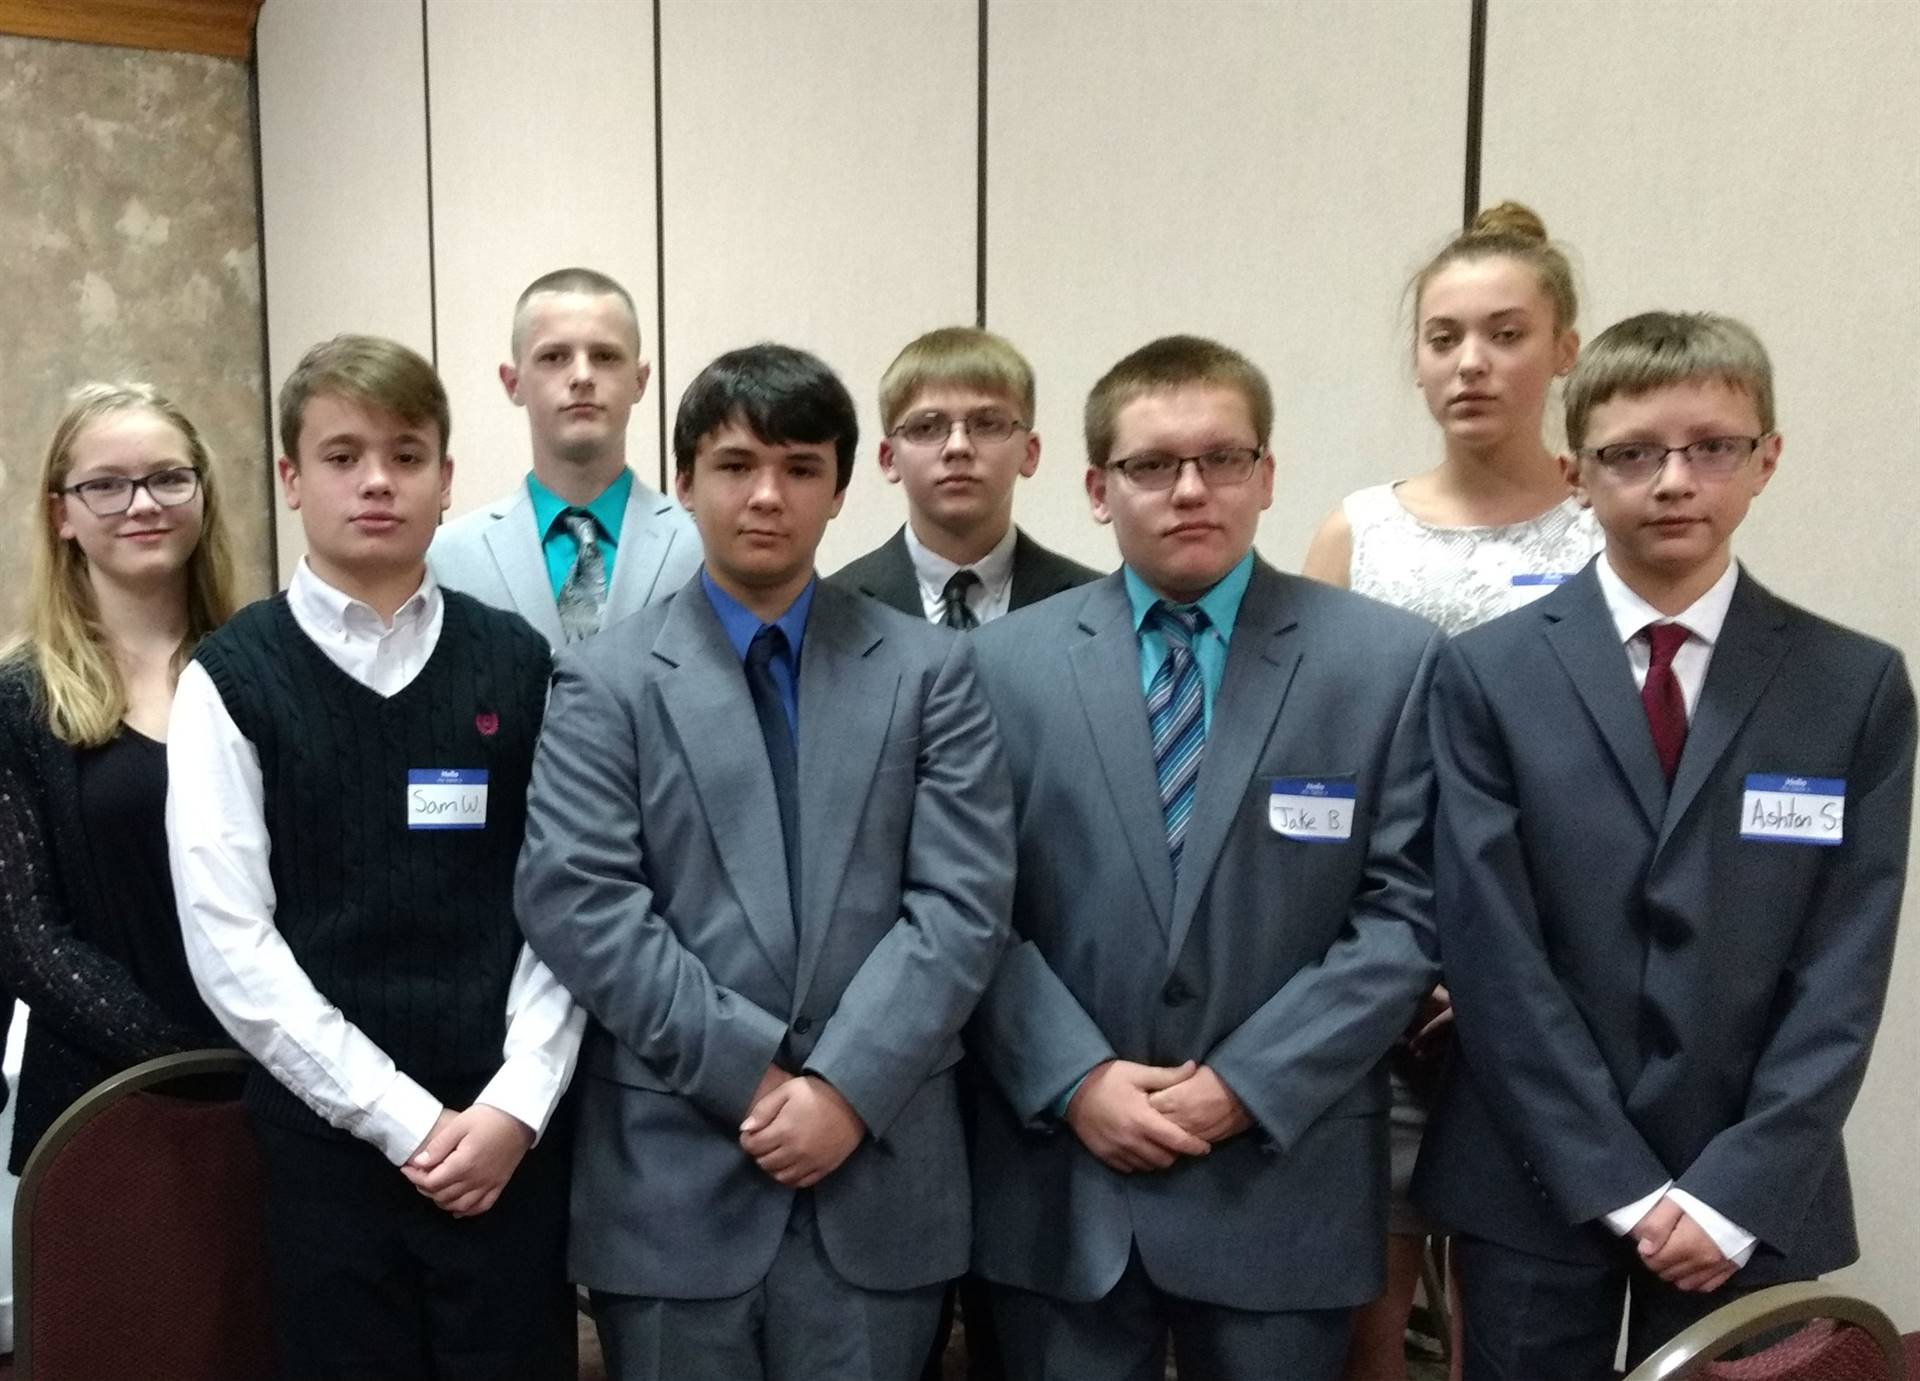 A group of students at Mock Trial competition